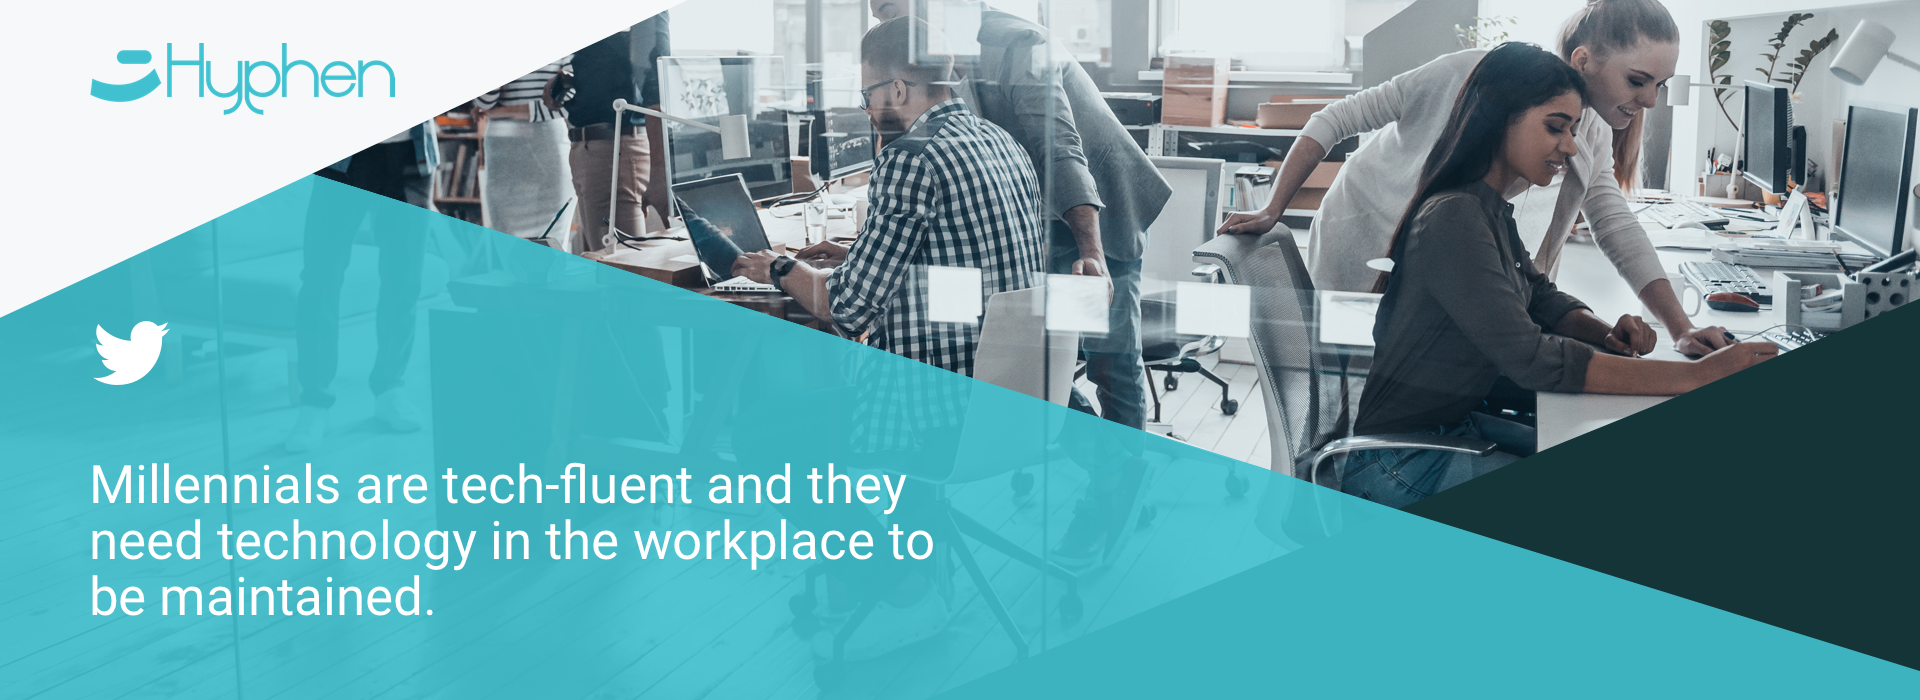 Millennials are tech-fluent and they need technology in the workplace to be maintained.